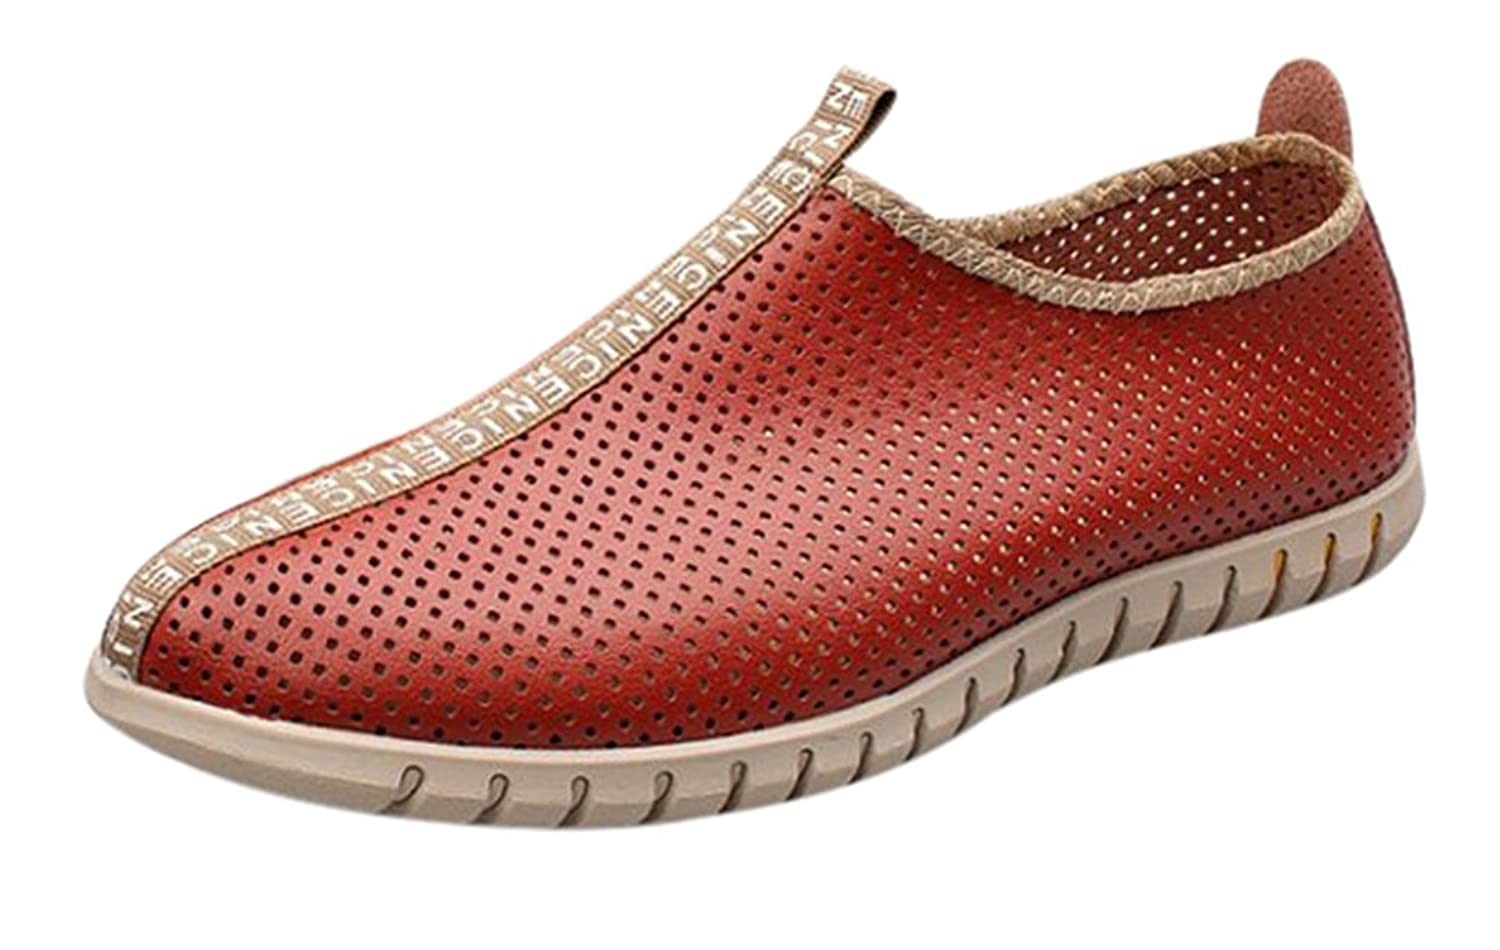 Fansela(TM) Men's Hollow Breathable Perforated PU LeatherBeach Shoes Size 7.5 Red